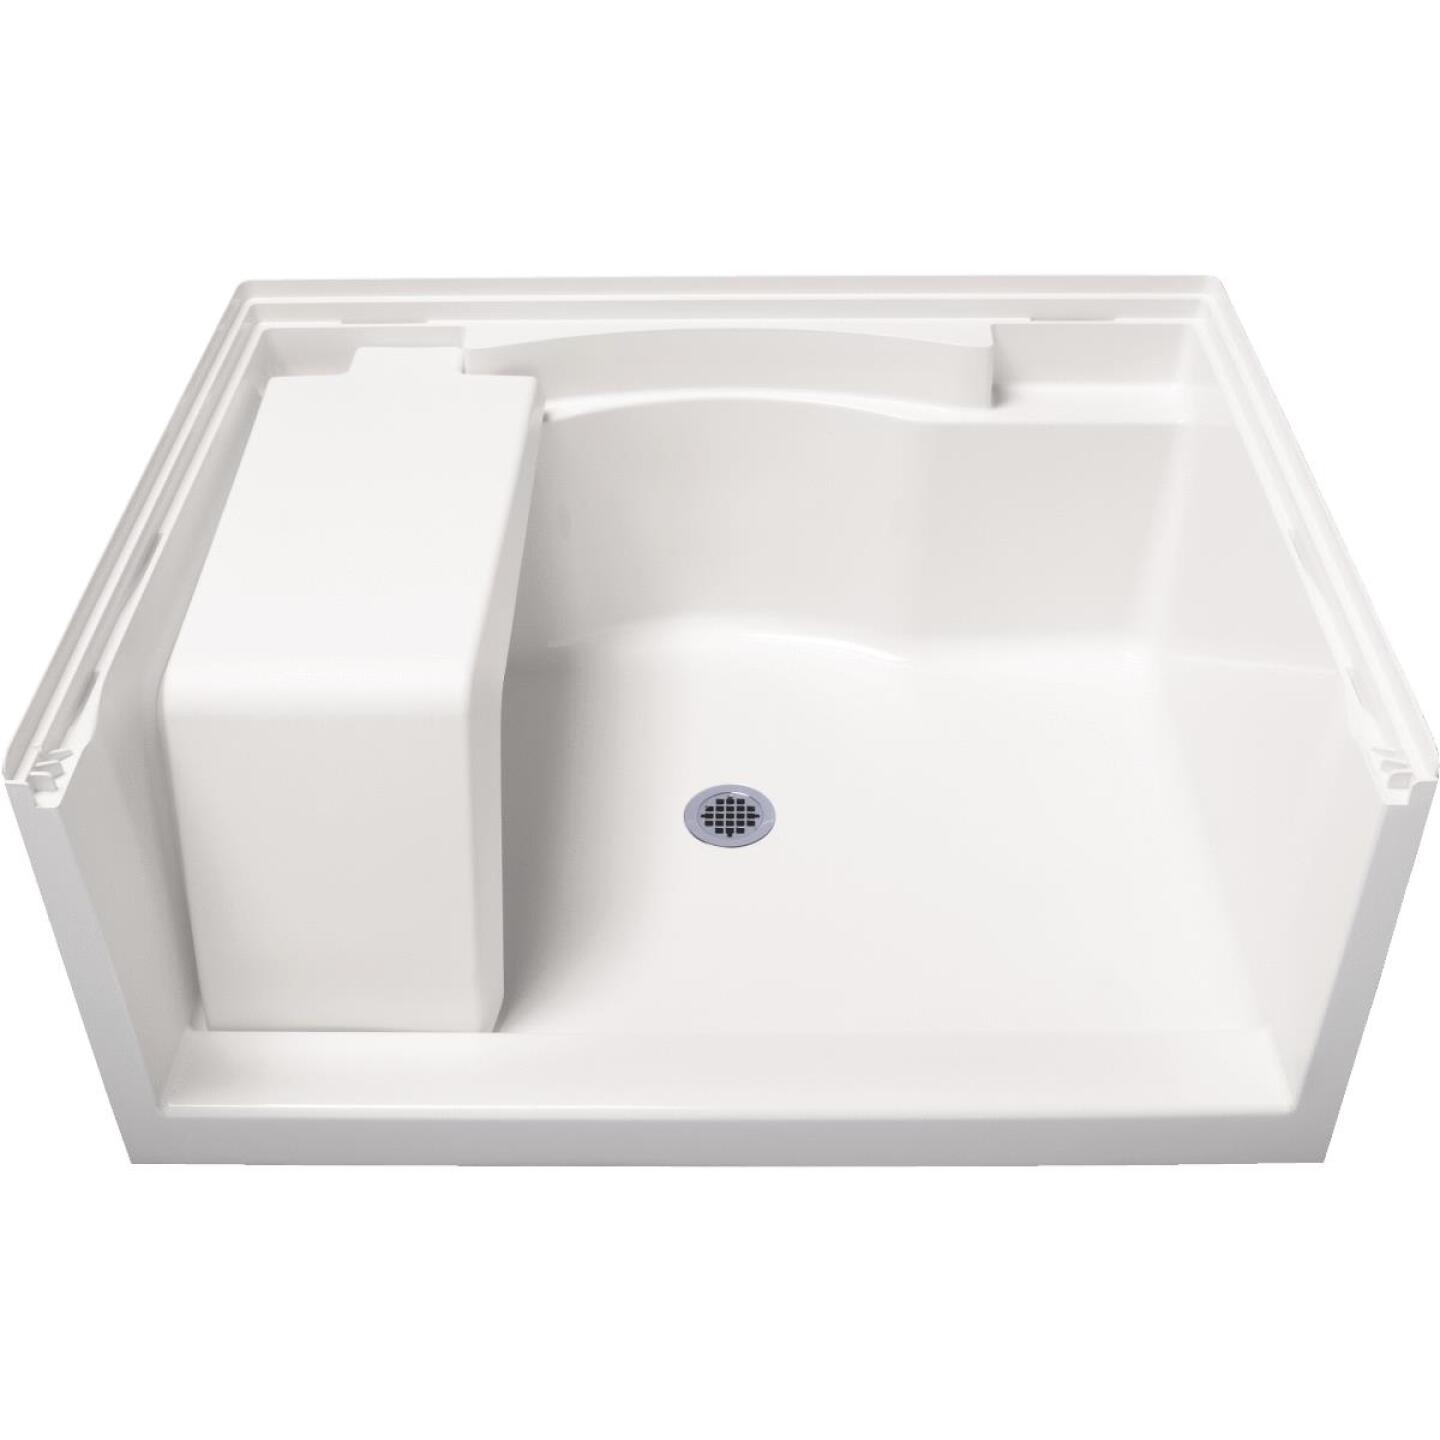 Sterling Accord 48 In. W x 36 In. D Center Drain Seated Shower Floor & Base in White Image 2